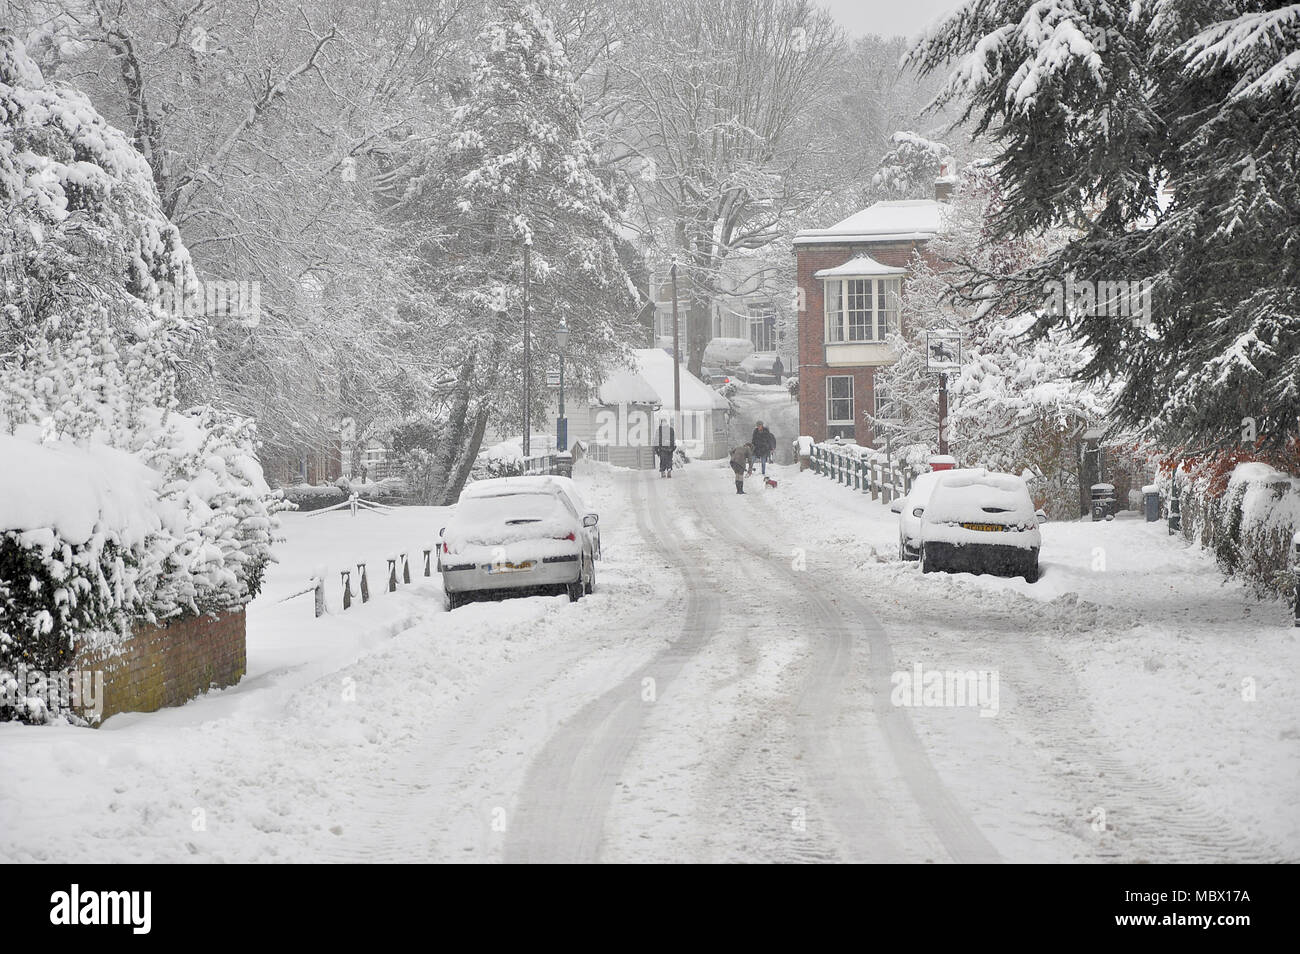 farningham-village-kent-in-heavy-snow-in-winter-farningham-is-a-village-and-civil-parish-in-the-sevenoaks-district-of-kent-england-uk-MBX17A.jpg